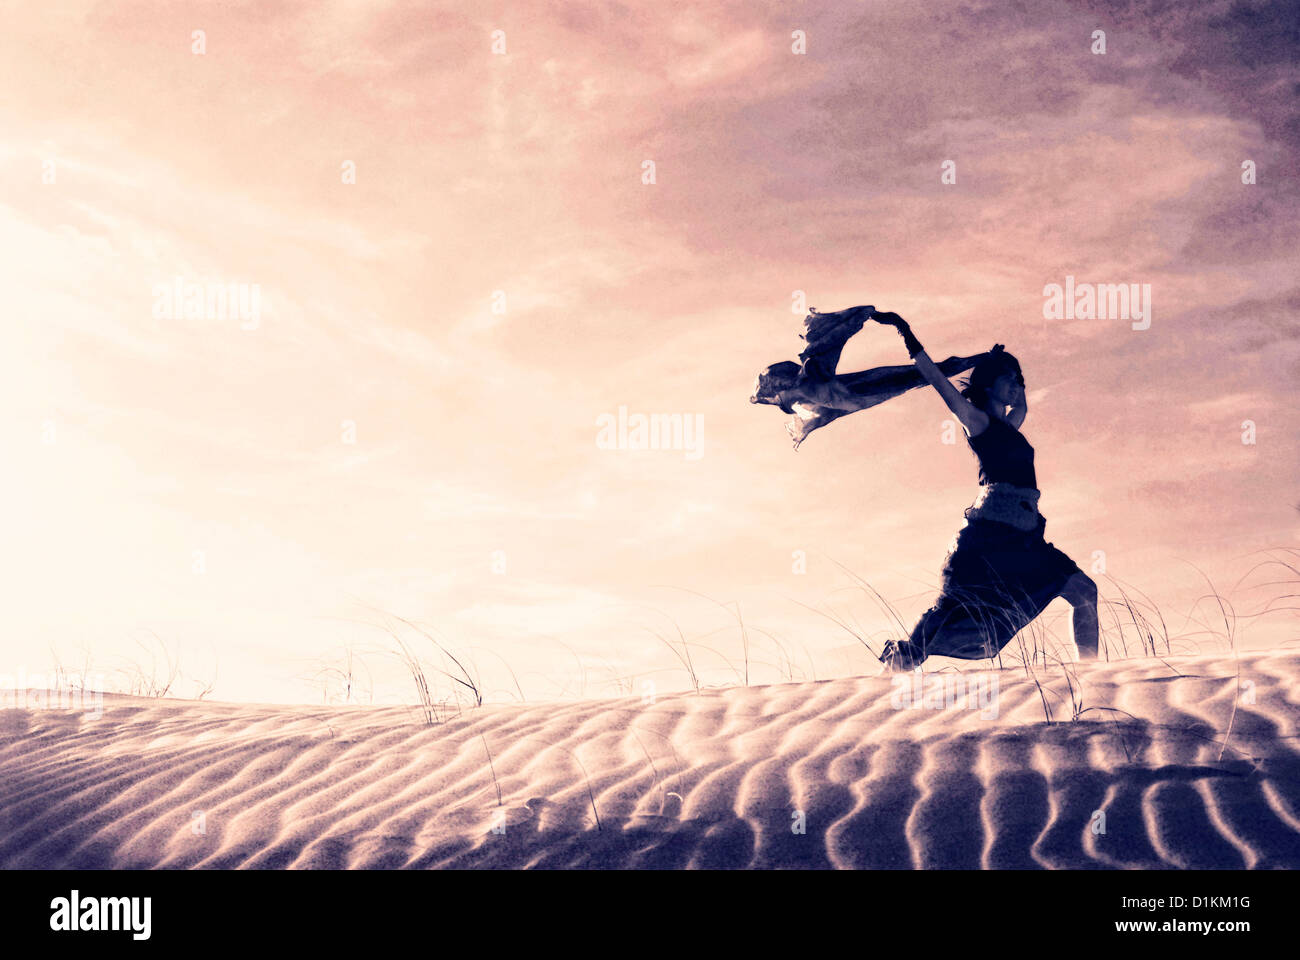 Silhouette of a woman holding a blowing scarf in the dunes. - Stock Image